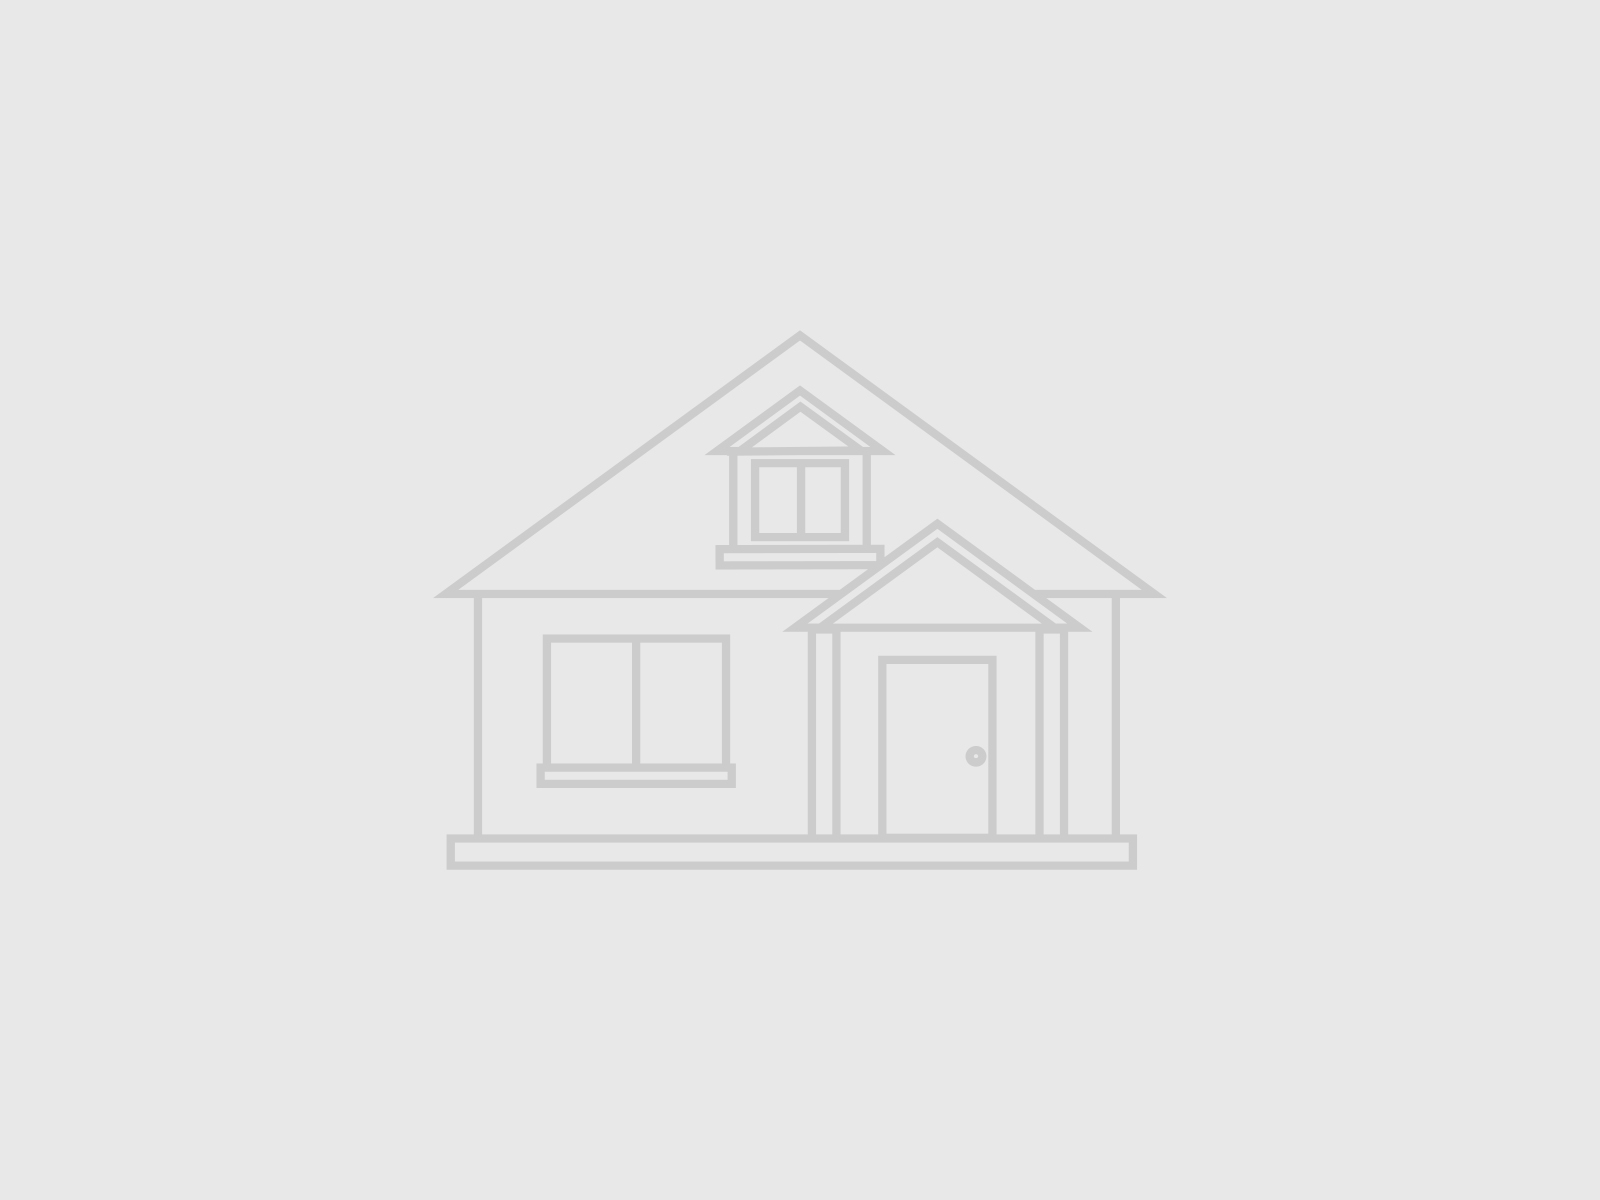 Single Family Homes for Sale at 1315 Bossler Lane O Fallon, Illinois 62269 United States